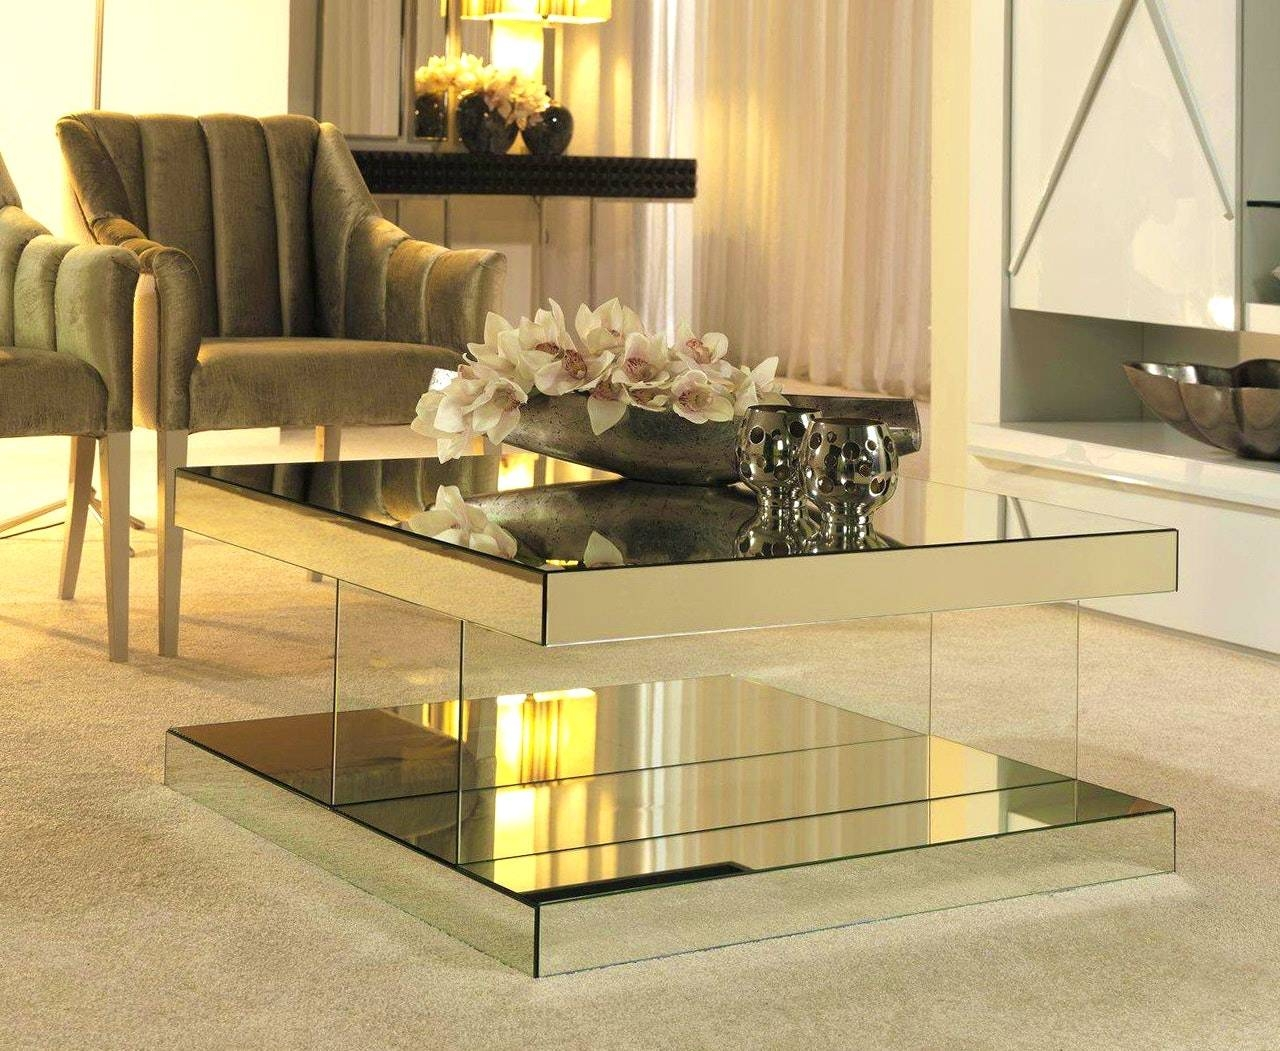 Kitchen : Captivating Mirrored And Glass Coffee Table Tables Gold intended for Round Mirrored Coffee Tables (Image 17 of 30)